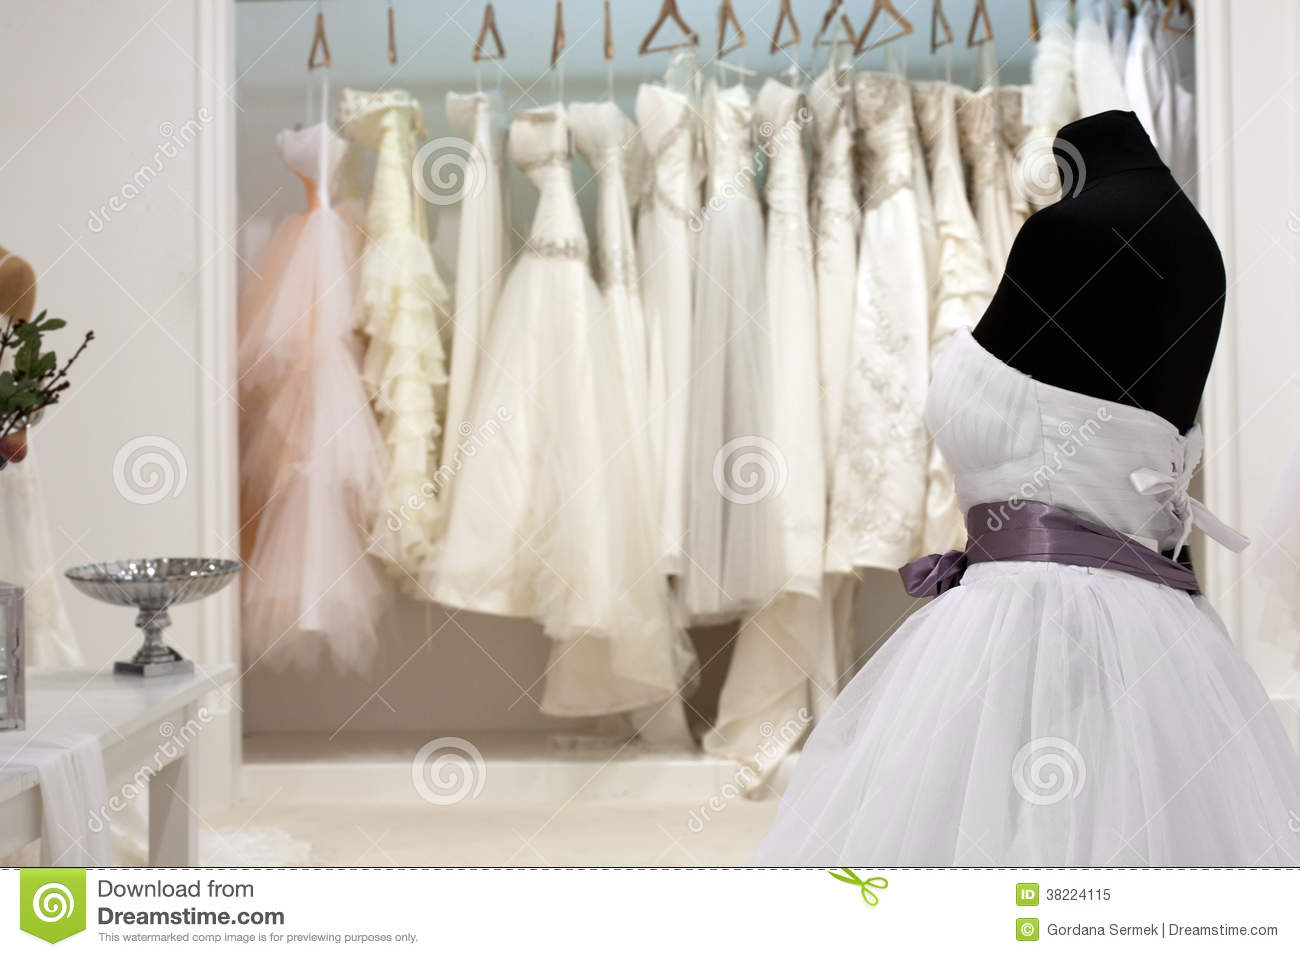 fd58e3798 The range of wedding dresses on hangers and on a mannequin in the showroom